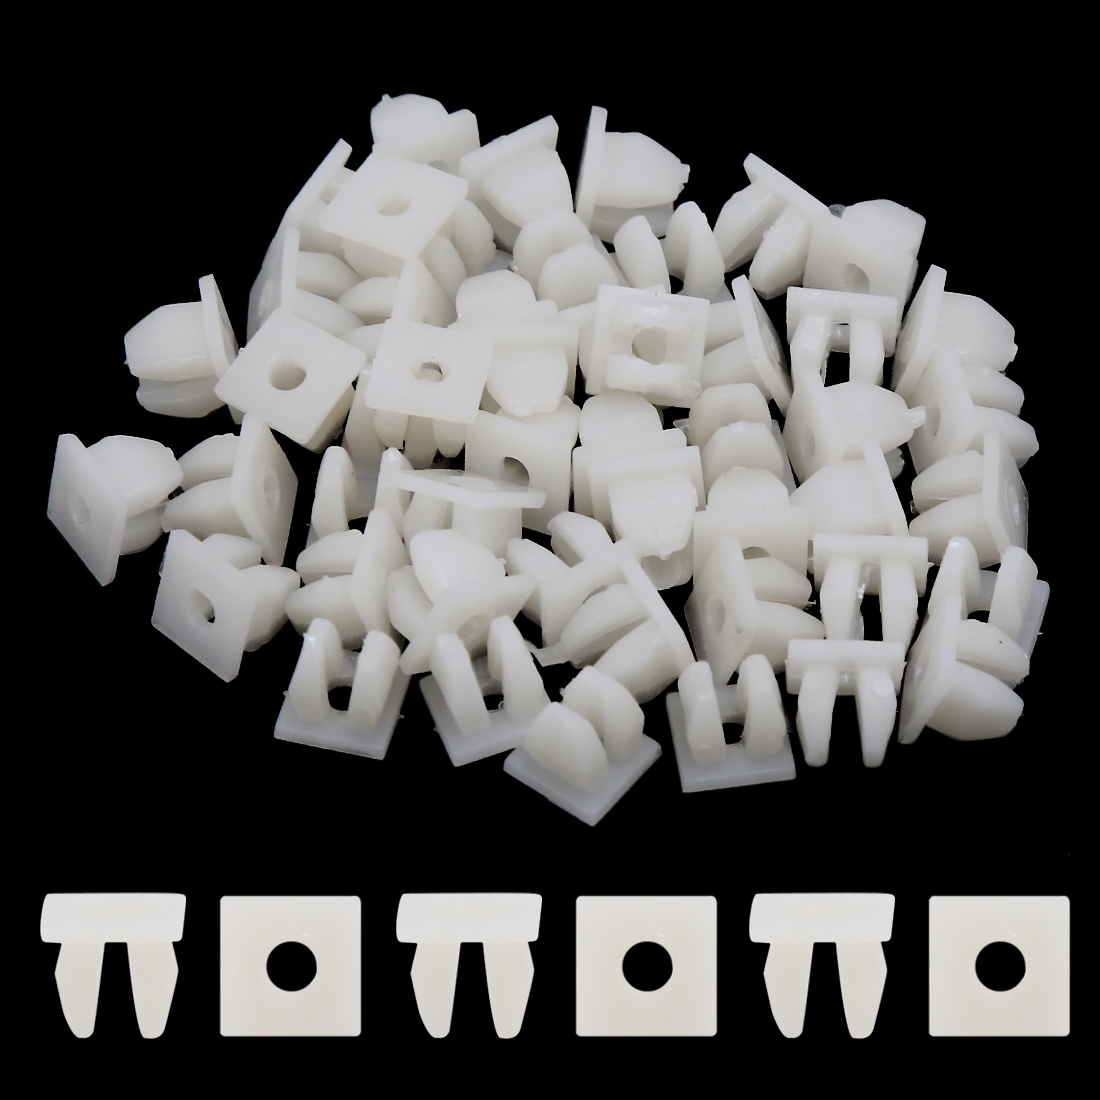 100pcs White Square Car Bumper Rivet Retainer Fender Cover Screw For Renault Sandero Symbol Talisman Twingo Twizy Vel Satis Wind